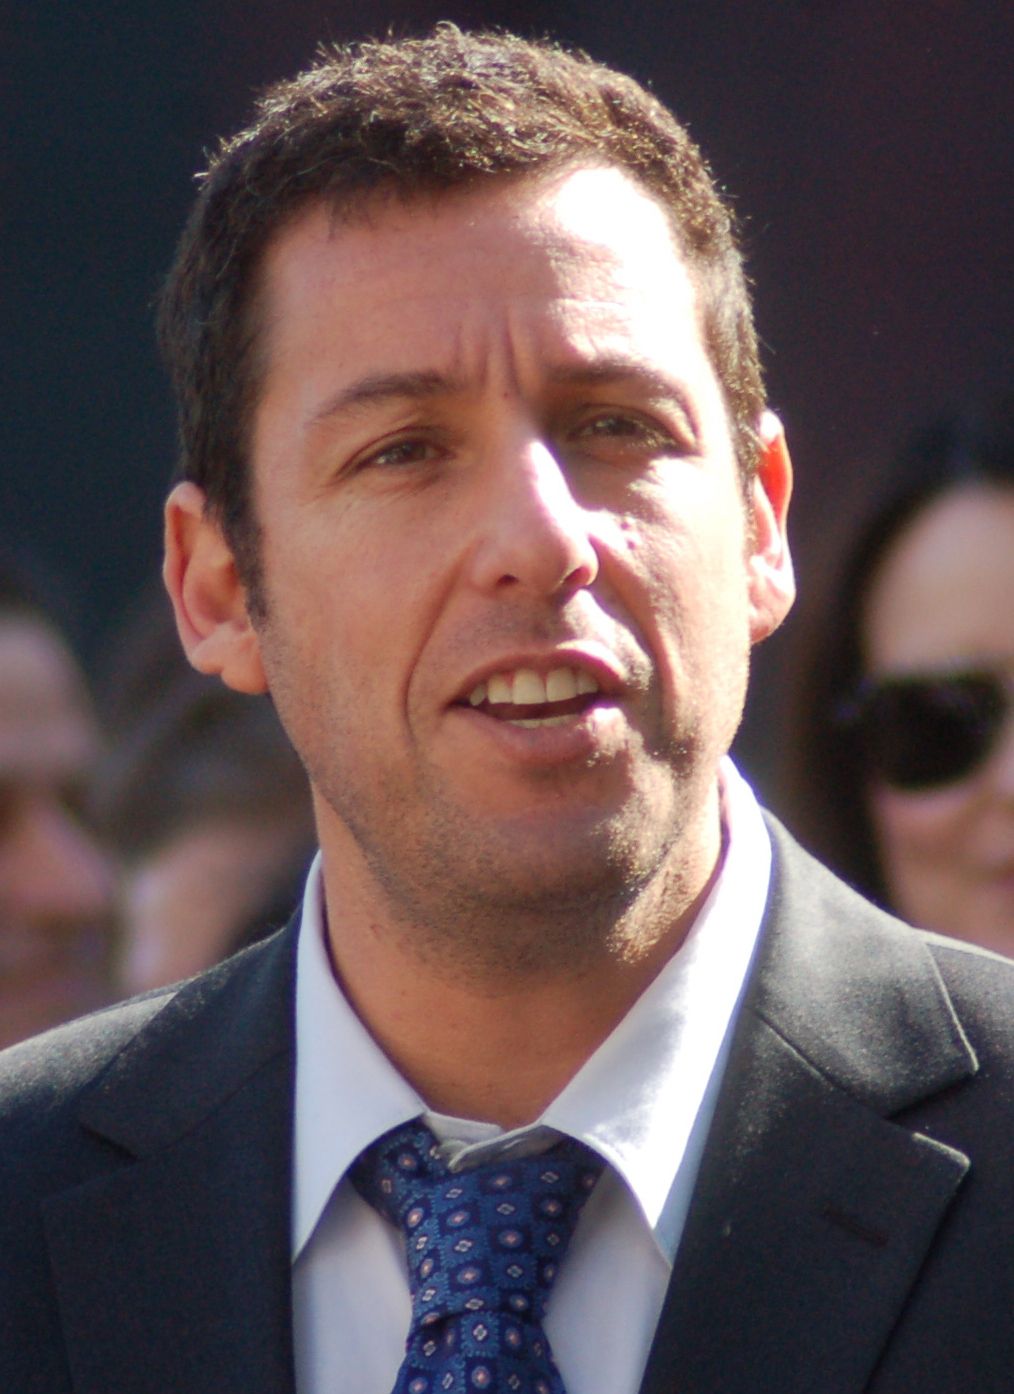 Adam Sandler, Image source:http://upload.wikimedia.org/wikipedia/commons/a/a5/Adam_Sandler_2011_(Cropped).jpg